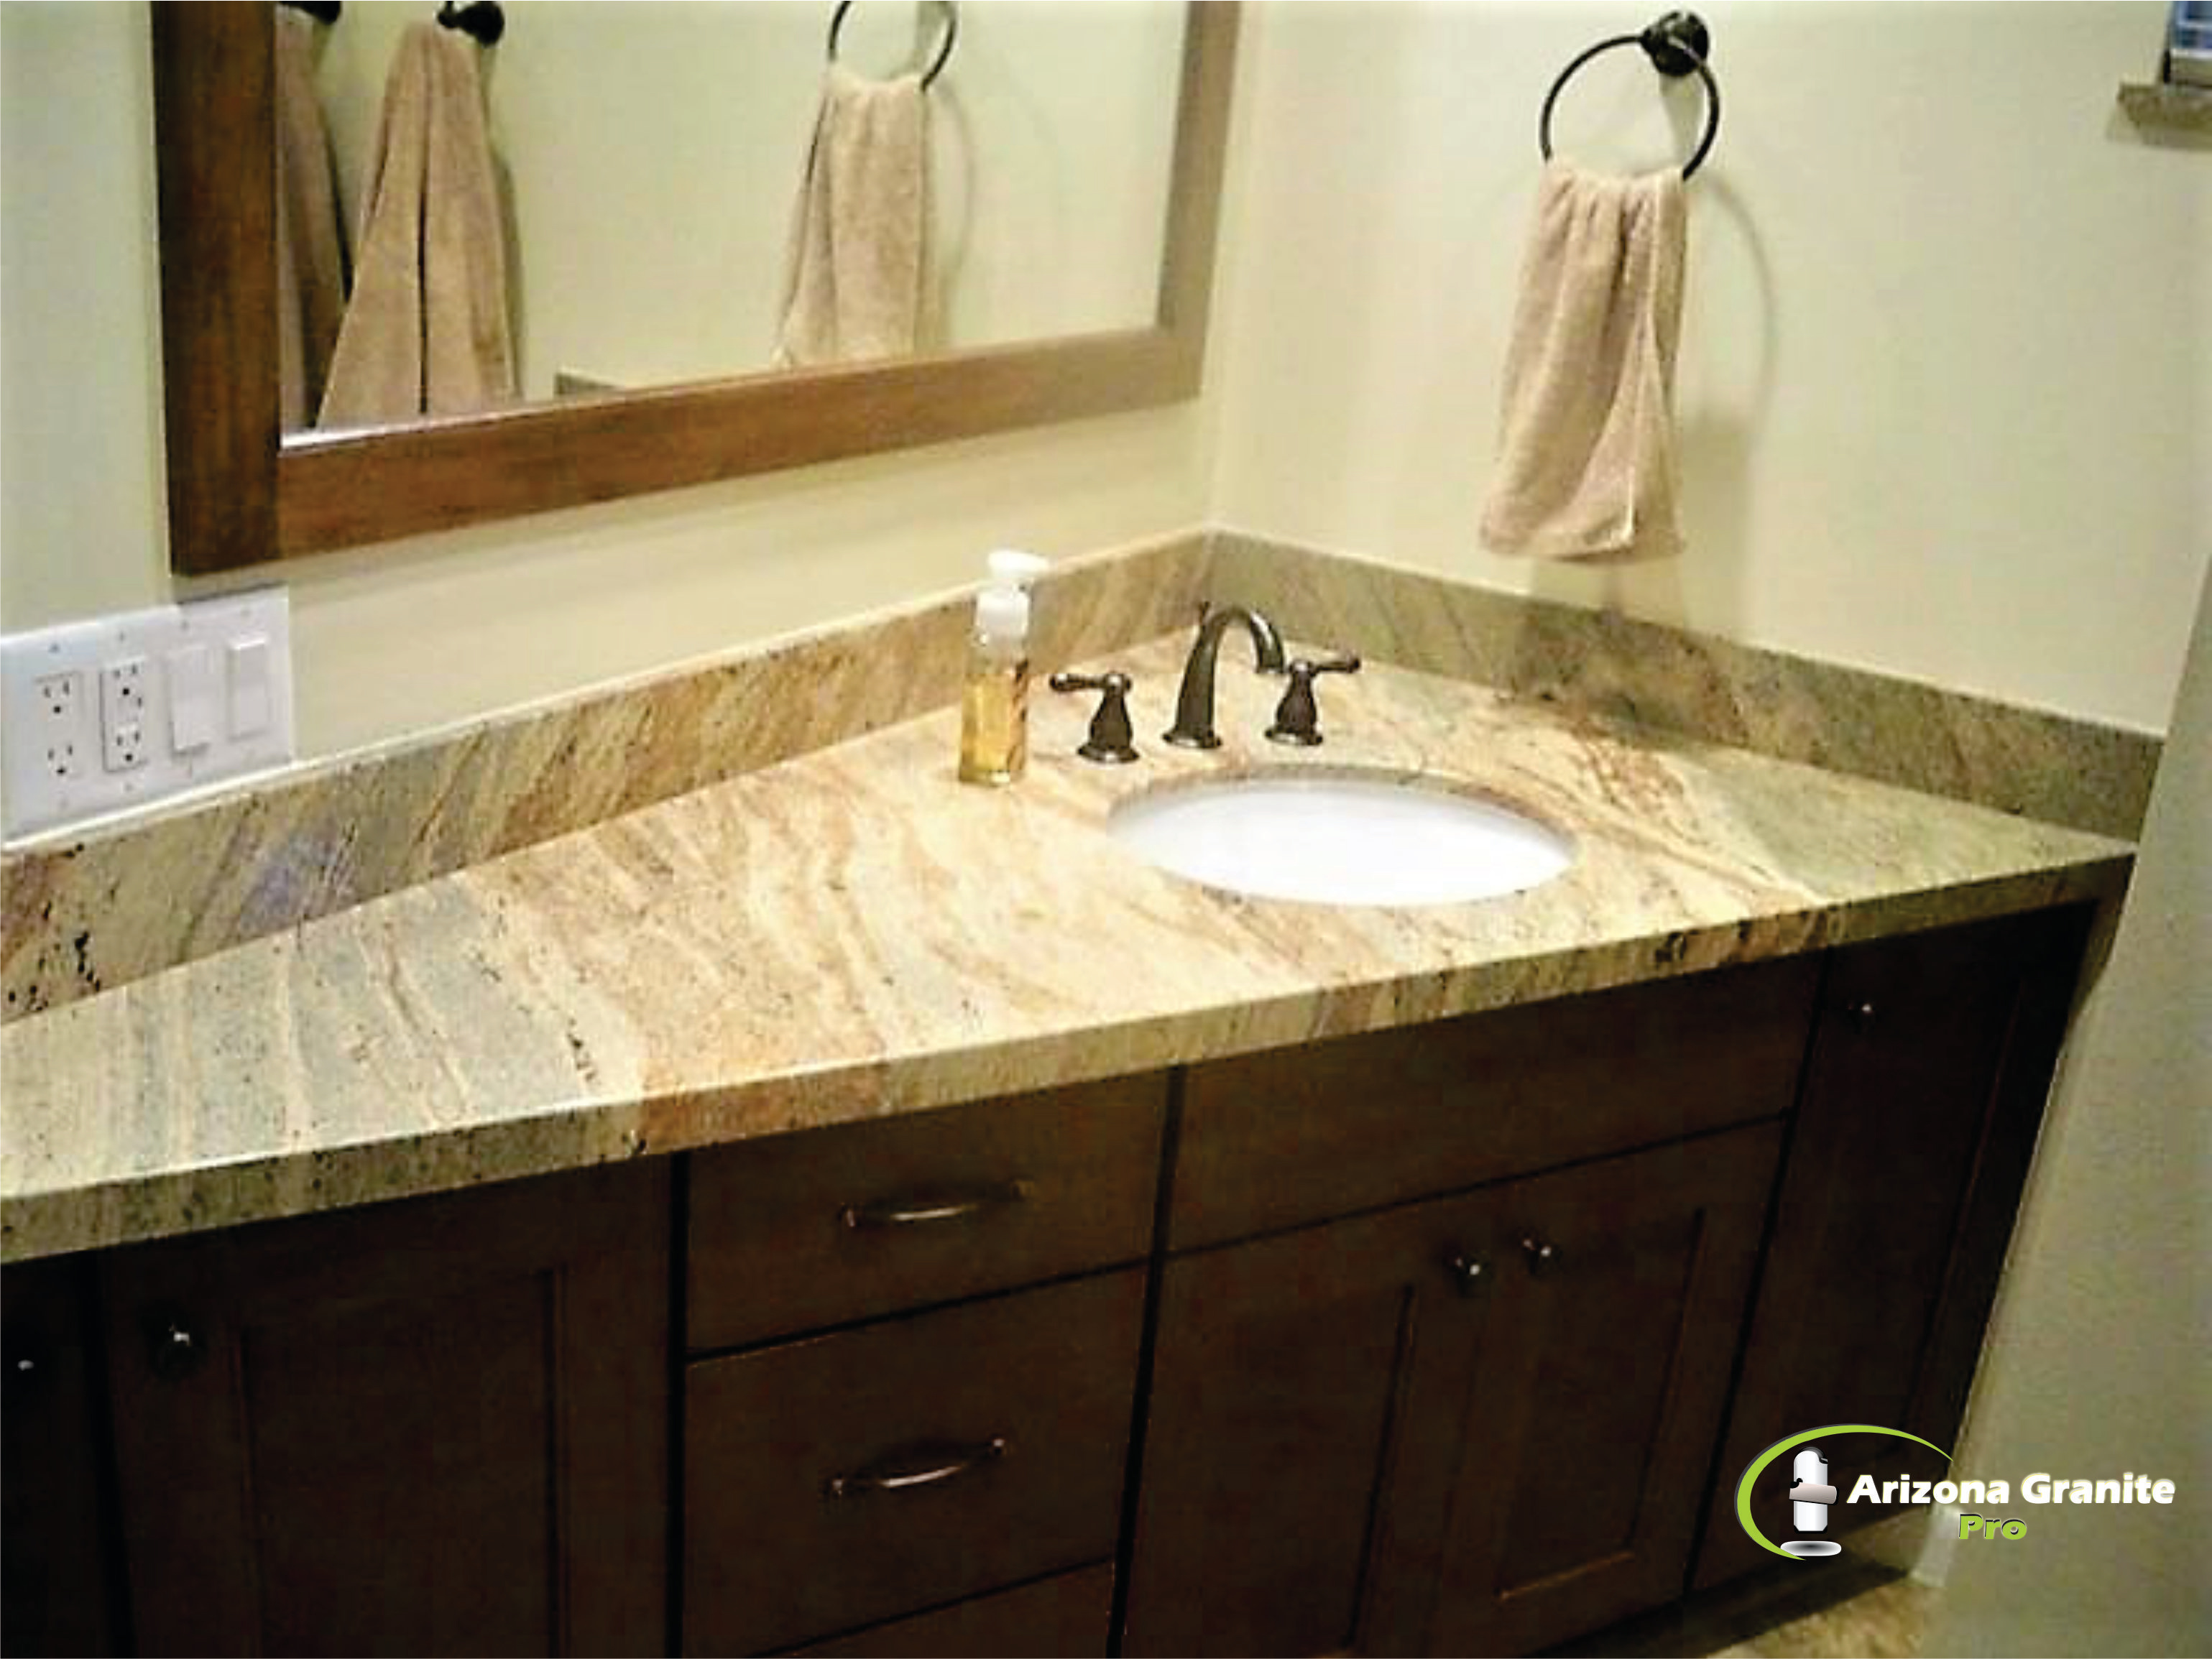 vanities-countertops-granite123